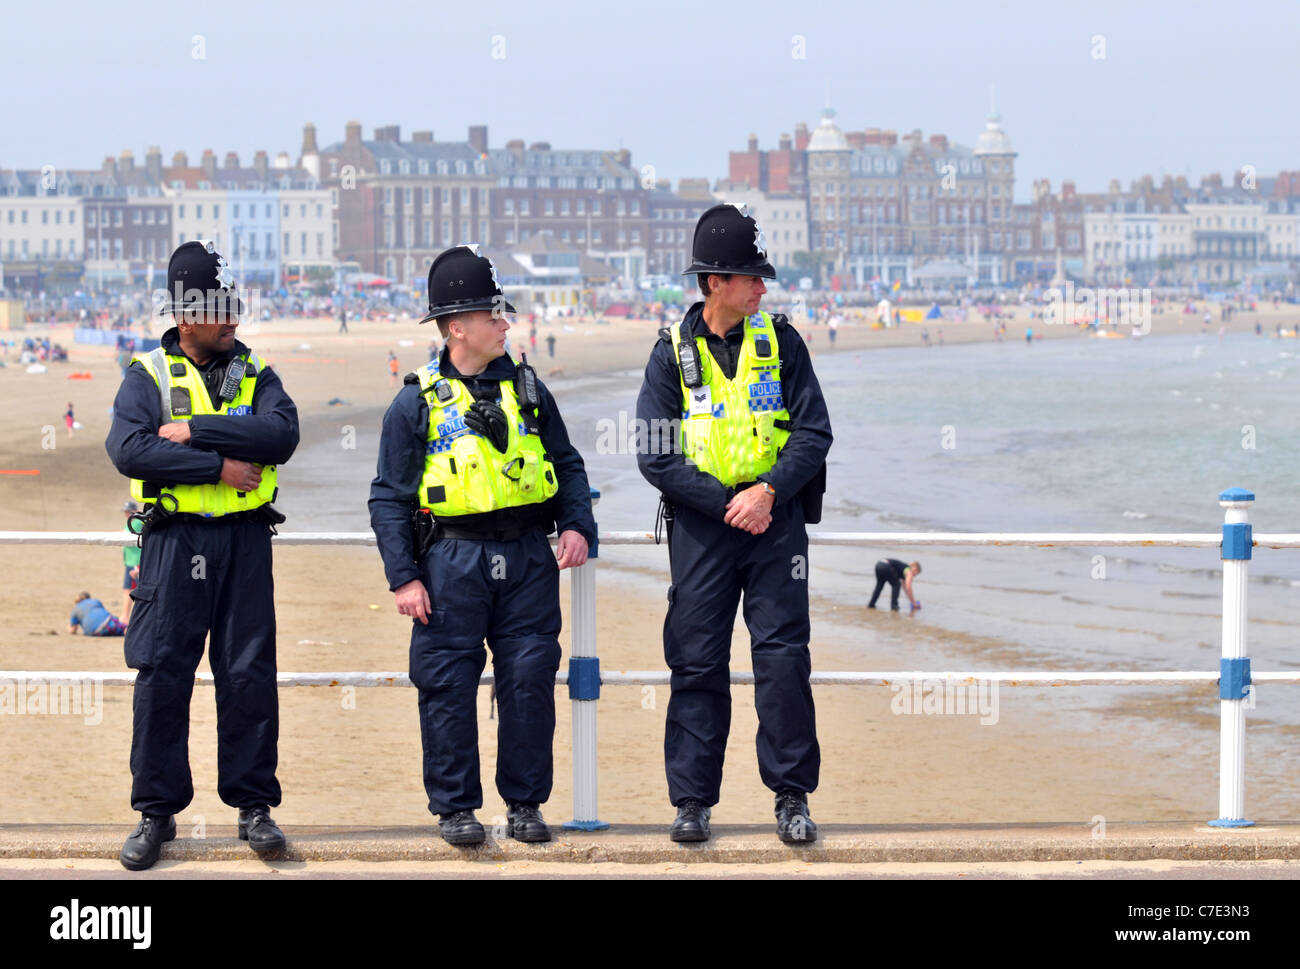 Police officers on duty, Weymouth, Dorset, Britain, UK - Stock Image